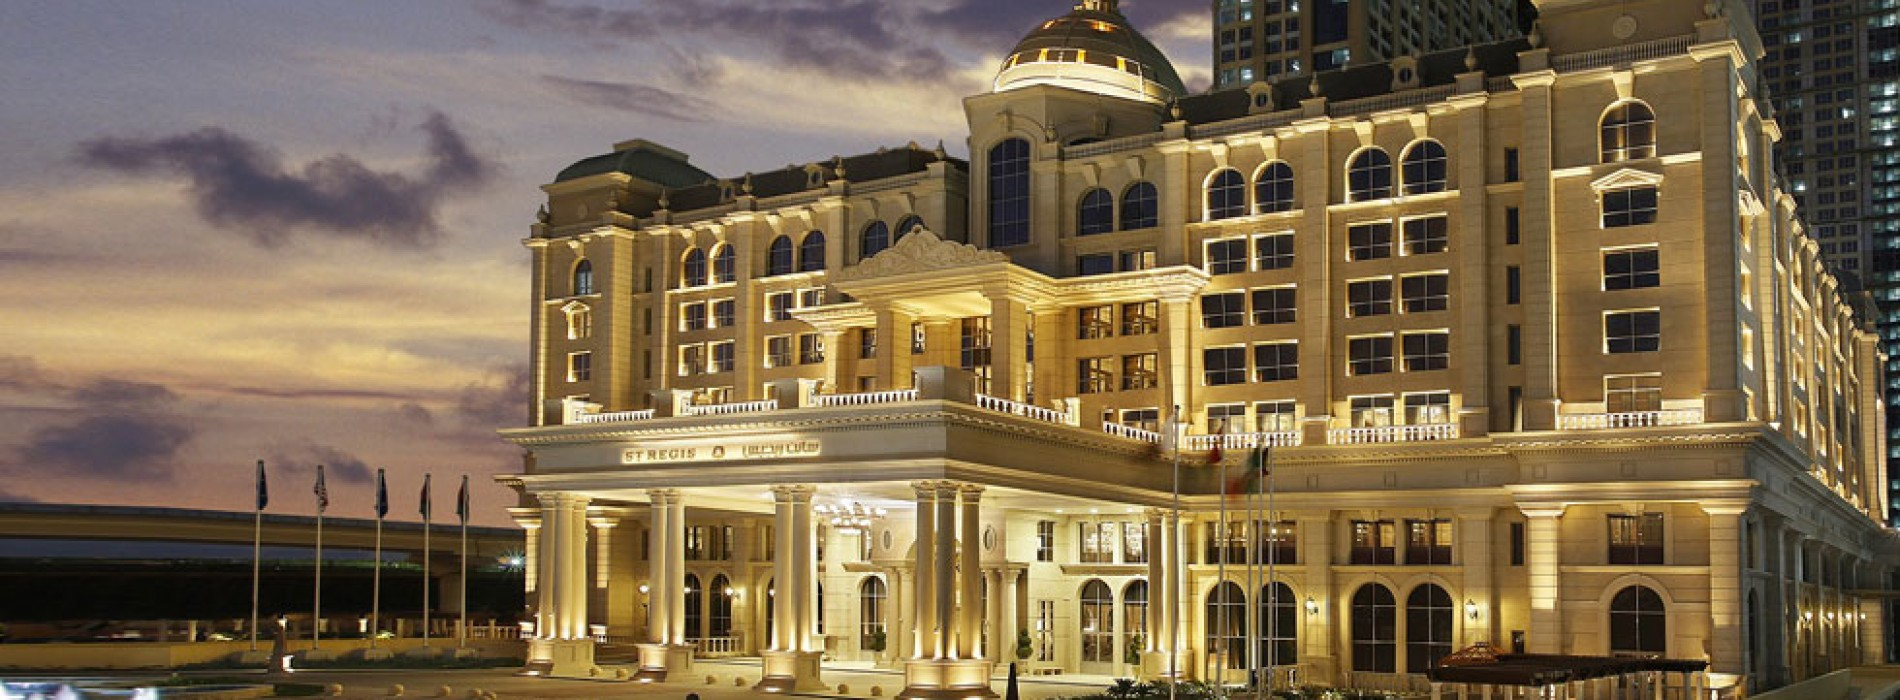 St. Regis Hotels & Resorts debuts in Dubai with new world address in Al Habtoor city